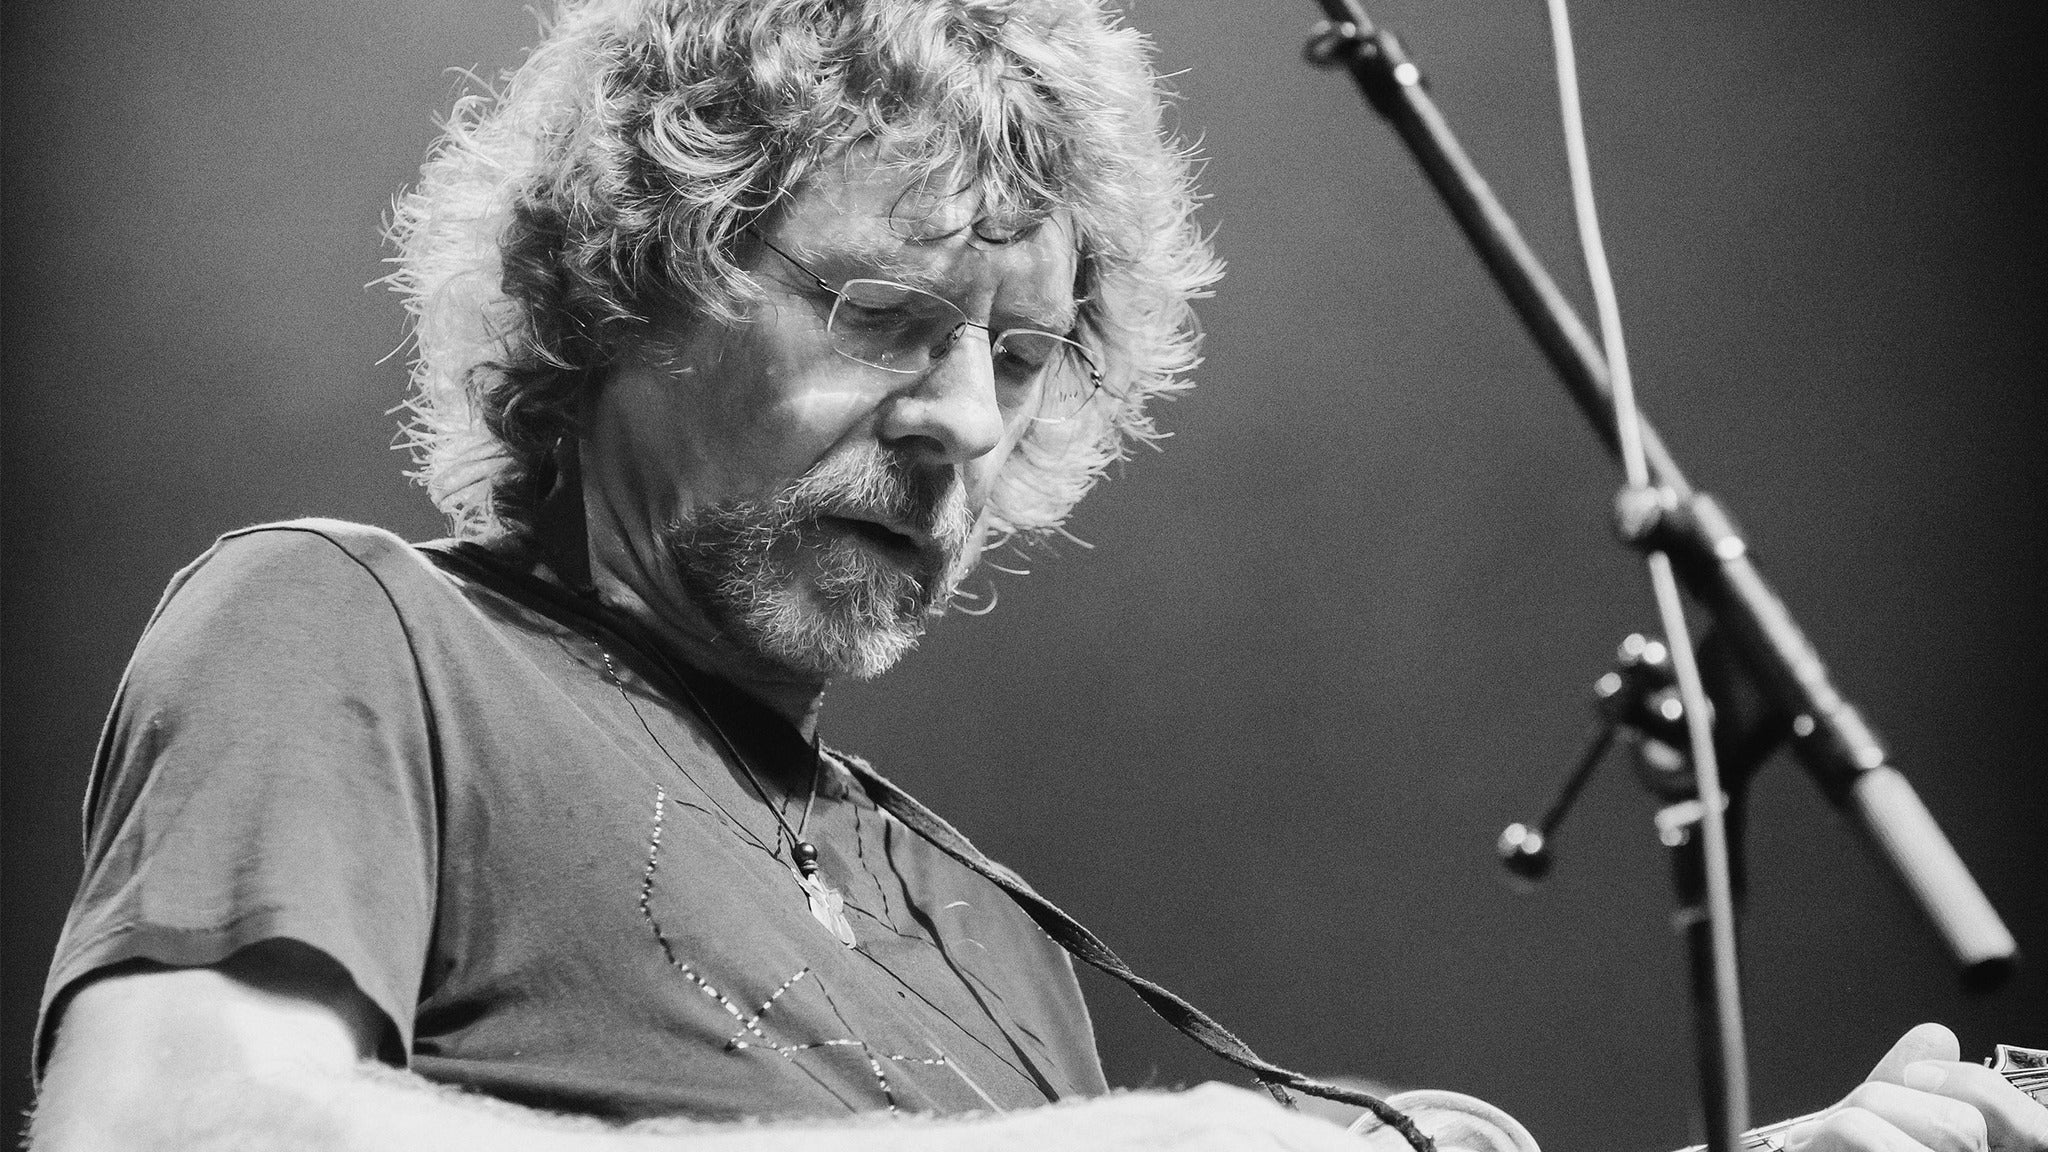 Sam Bush & The Travelin' McCourys at The Walker Theatre